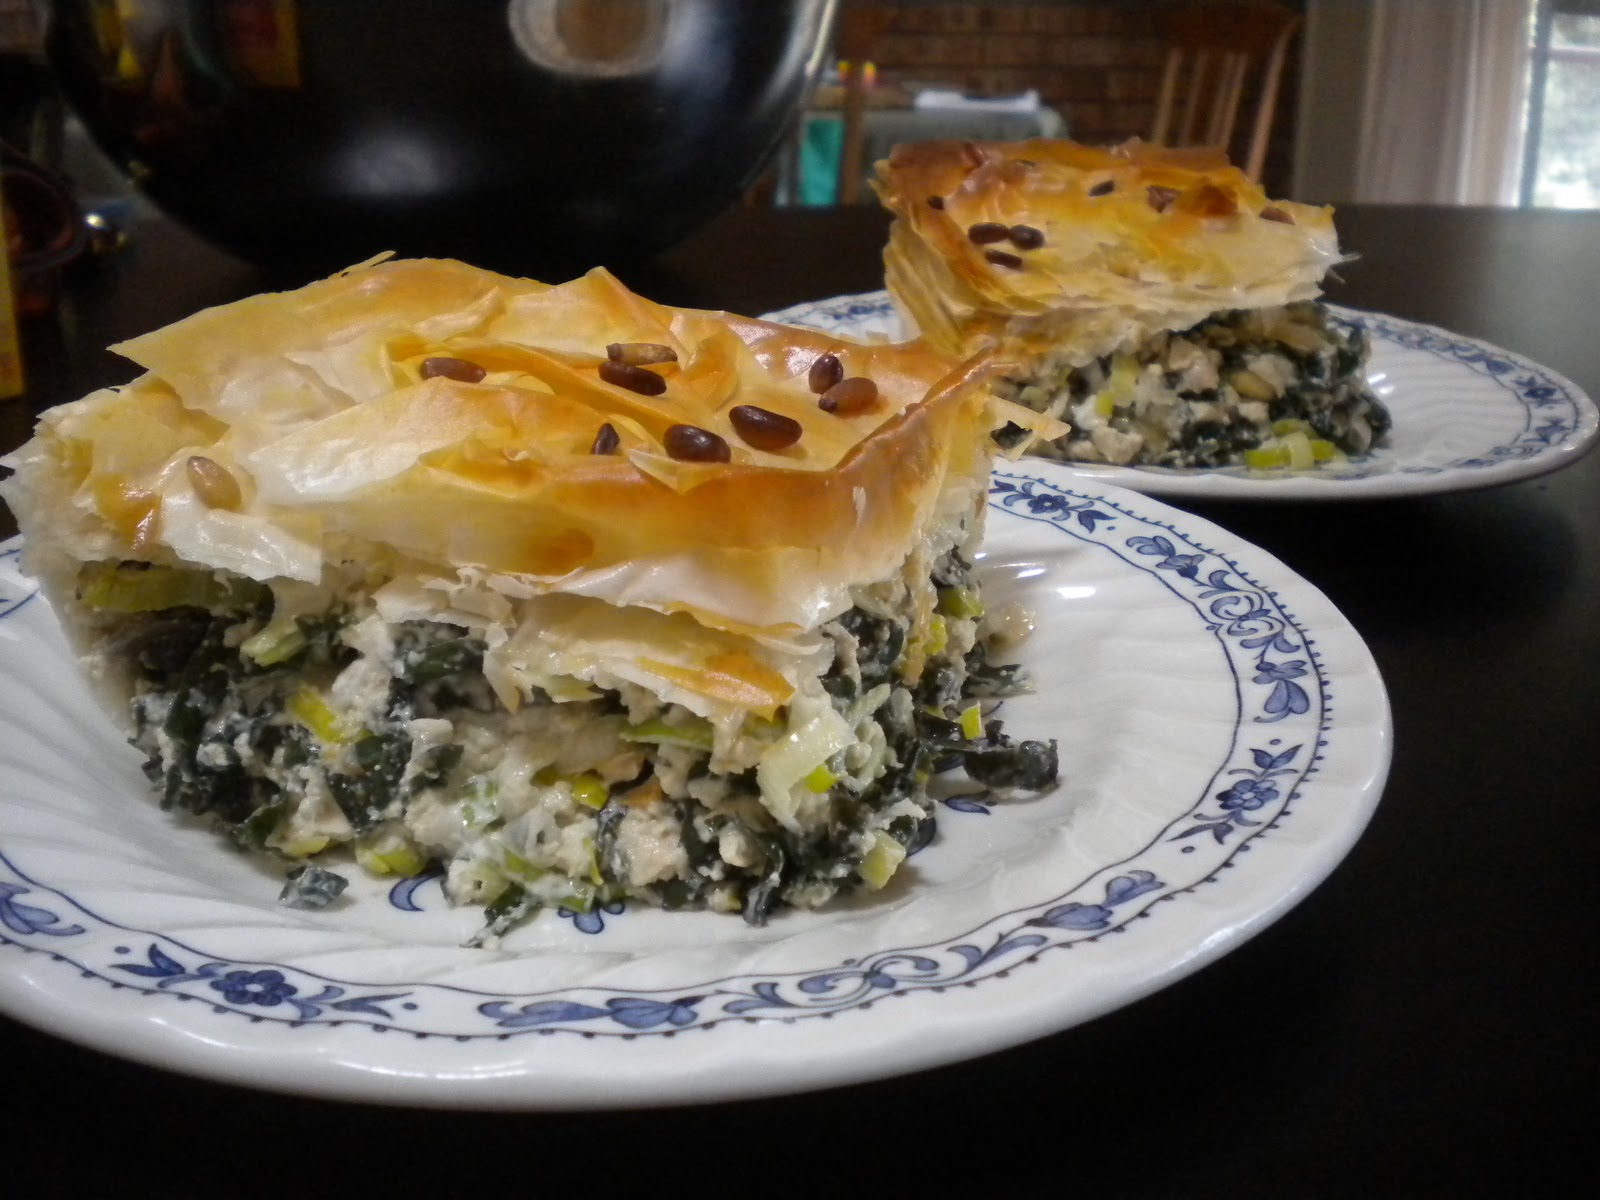 Gormandize bosnian zeljanica vegan spinach and cheese pie bosnian zeljanica vegan spinach and cheese pie forumfinder